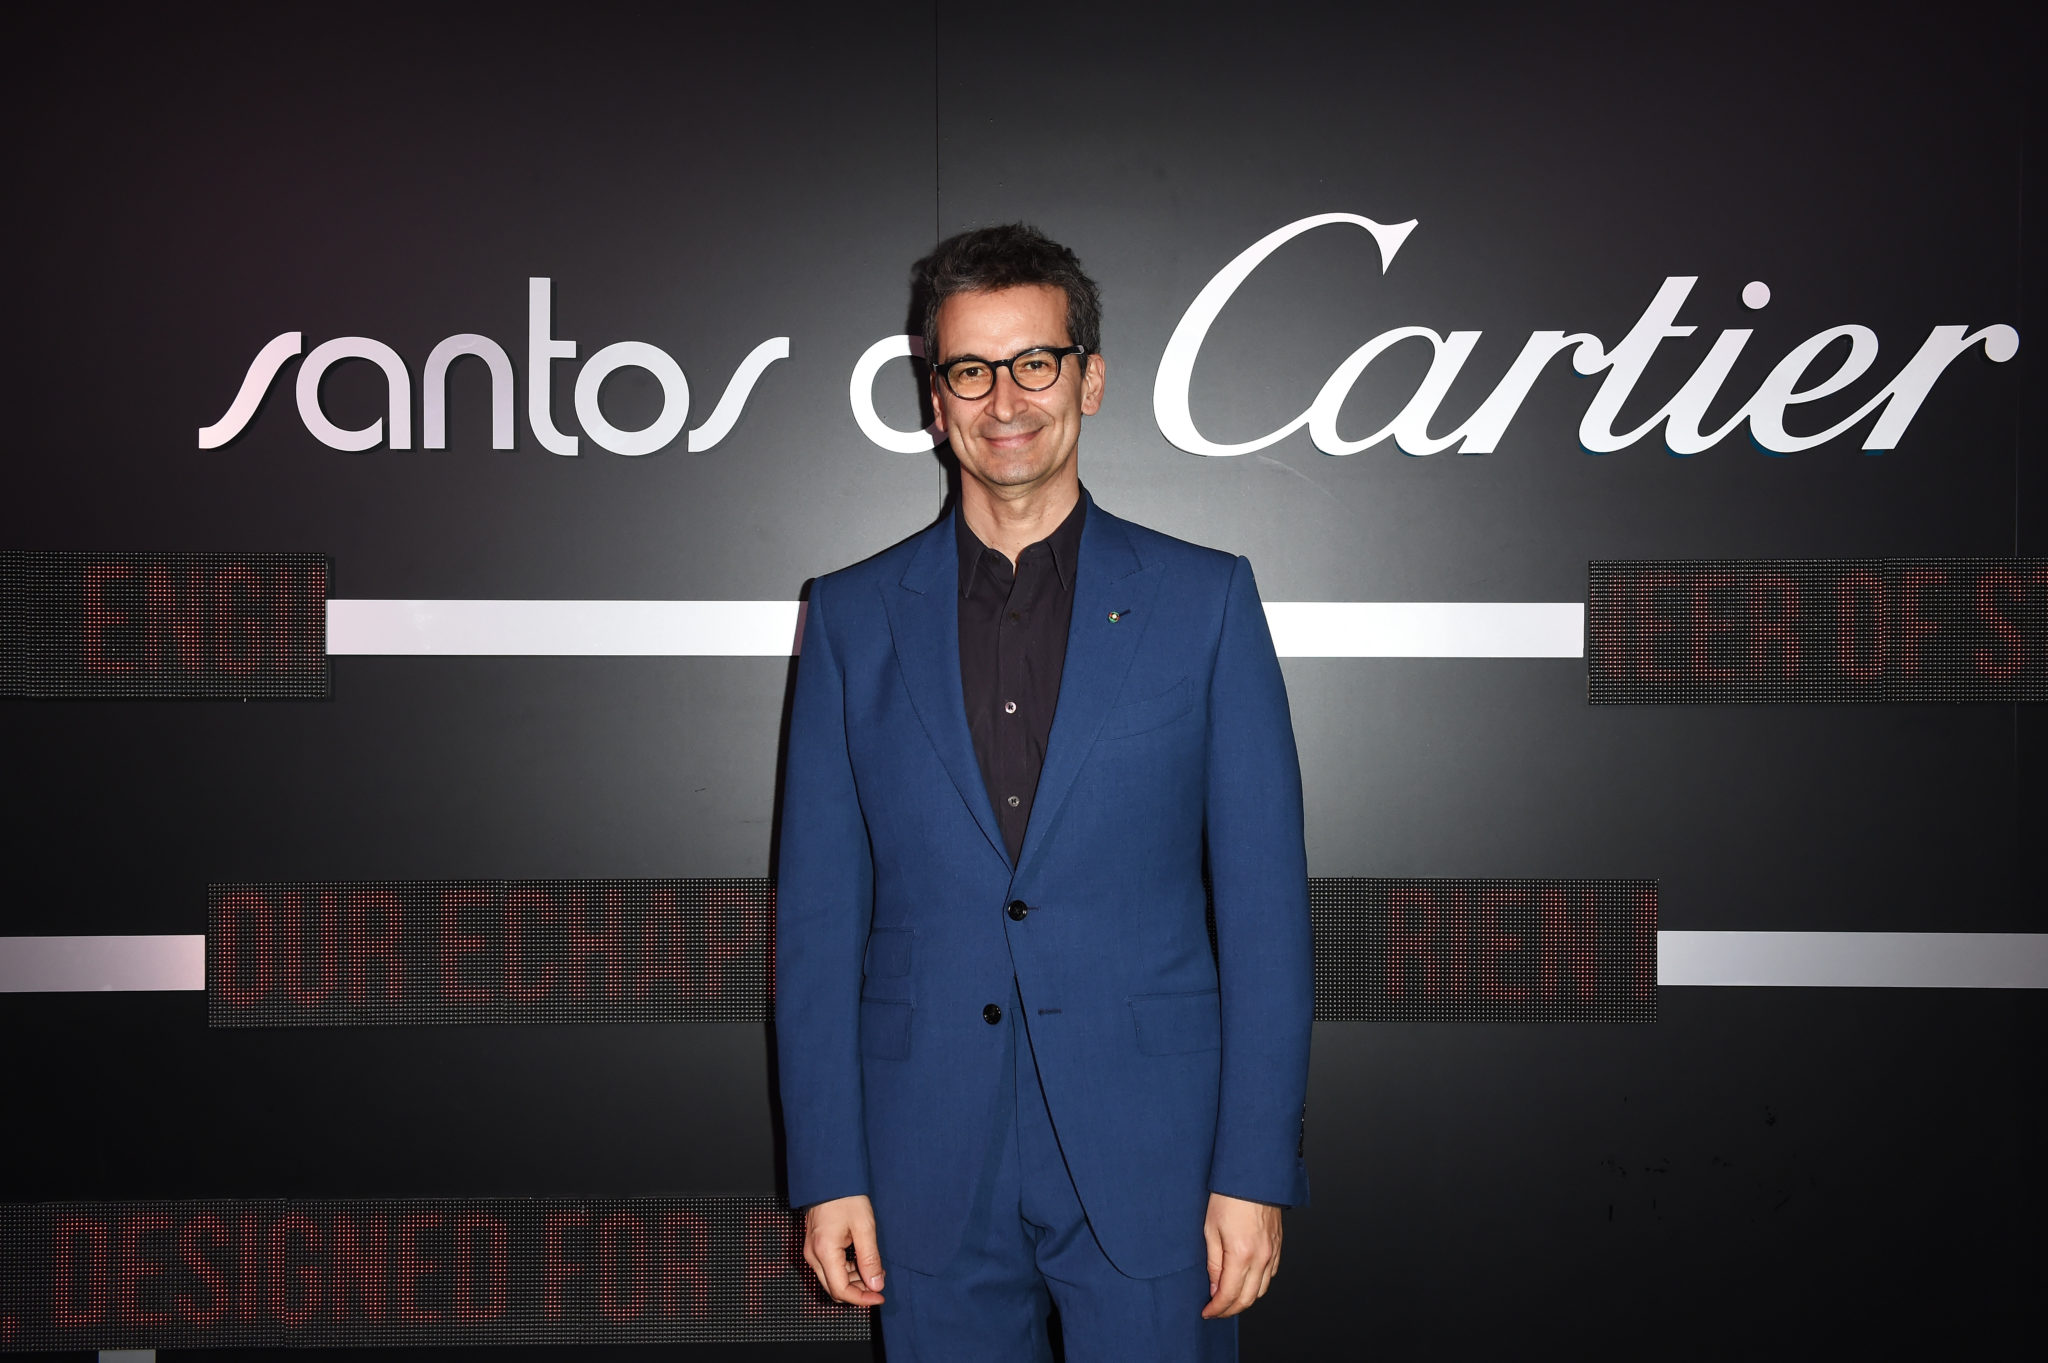 Cartier Legendary Thrill, Cocktail Party